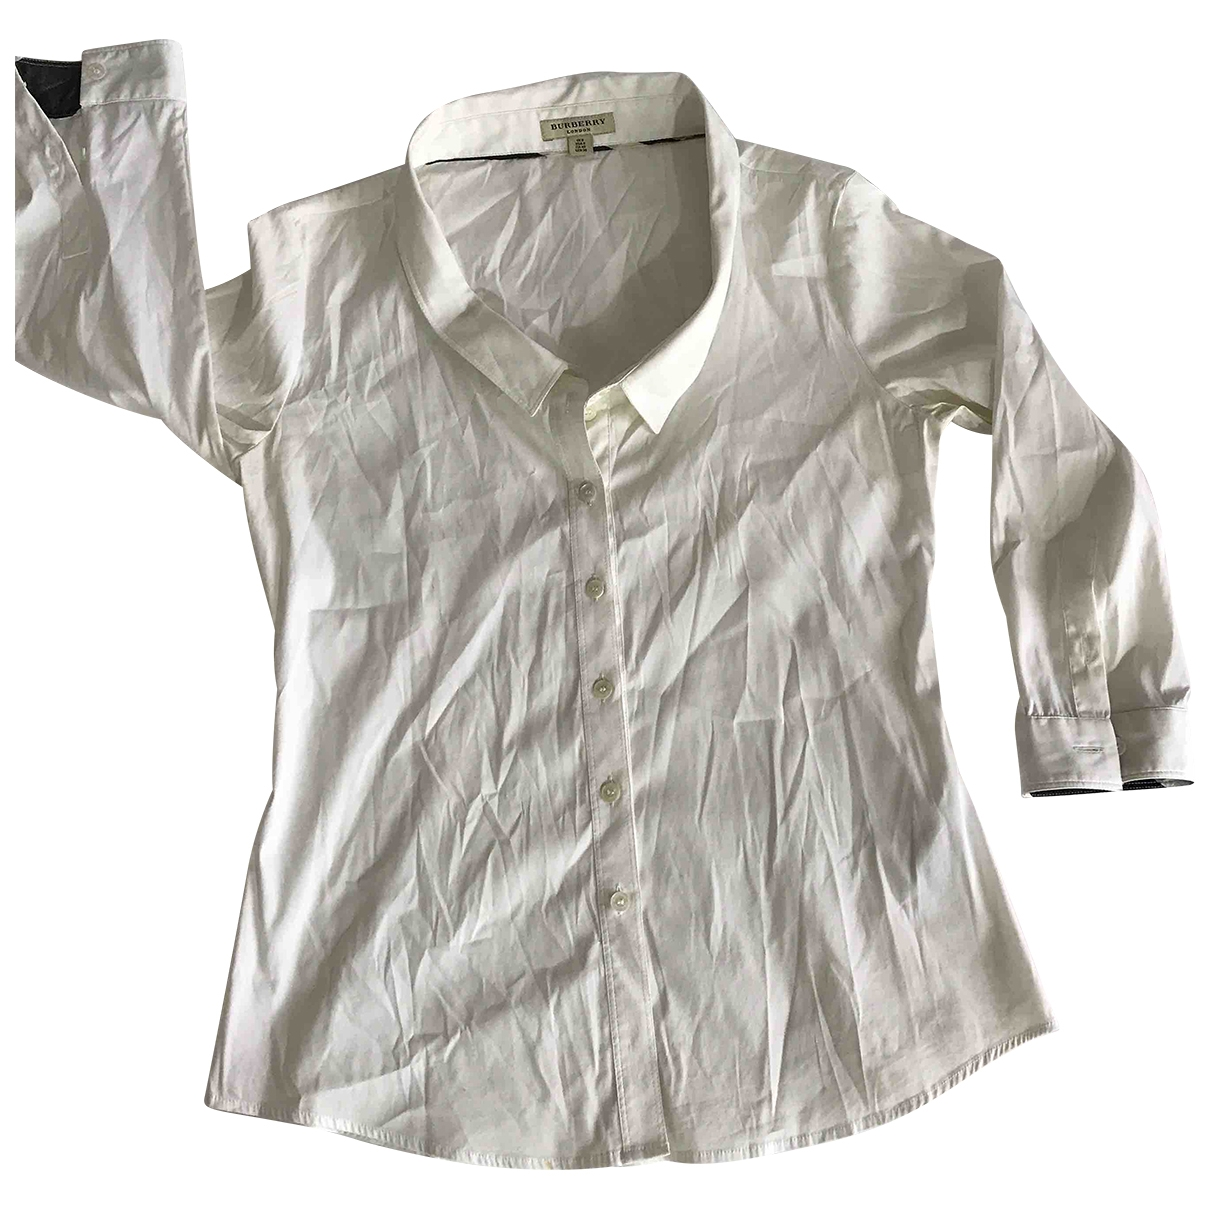 Burberry \N White Cotton  top for Women 8 UK